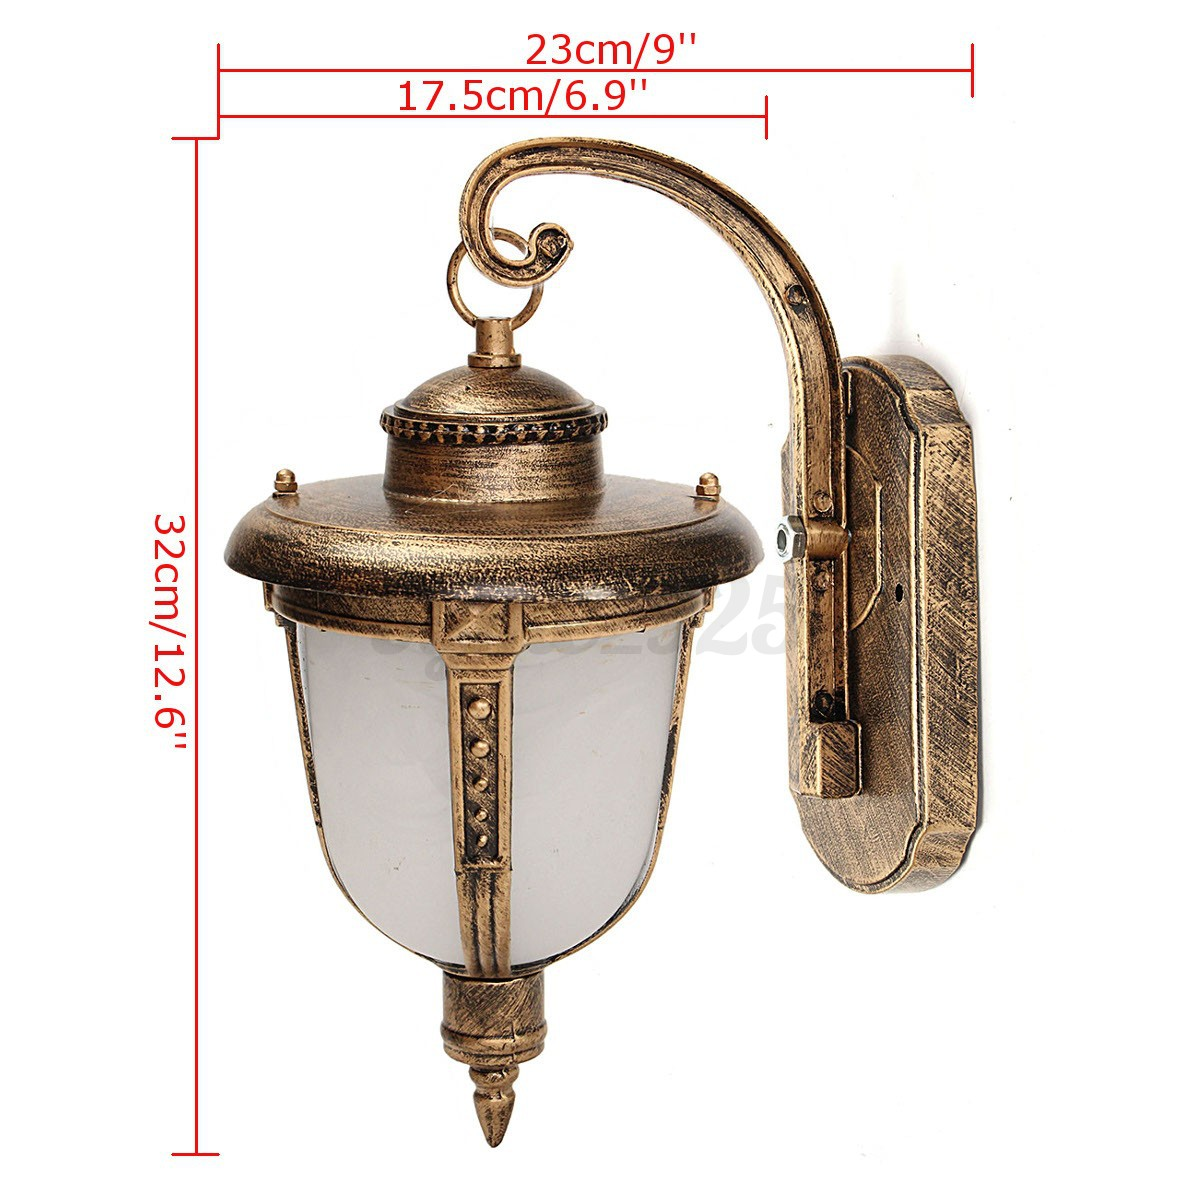 220v vintage exterior wall post lighting sconce hanging landscape garden lamp ebay for Exterior light sconce